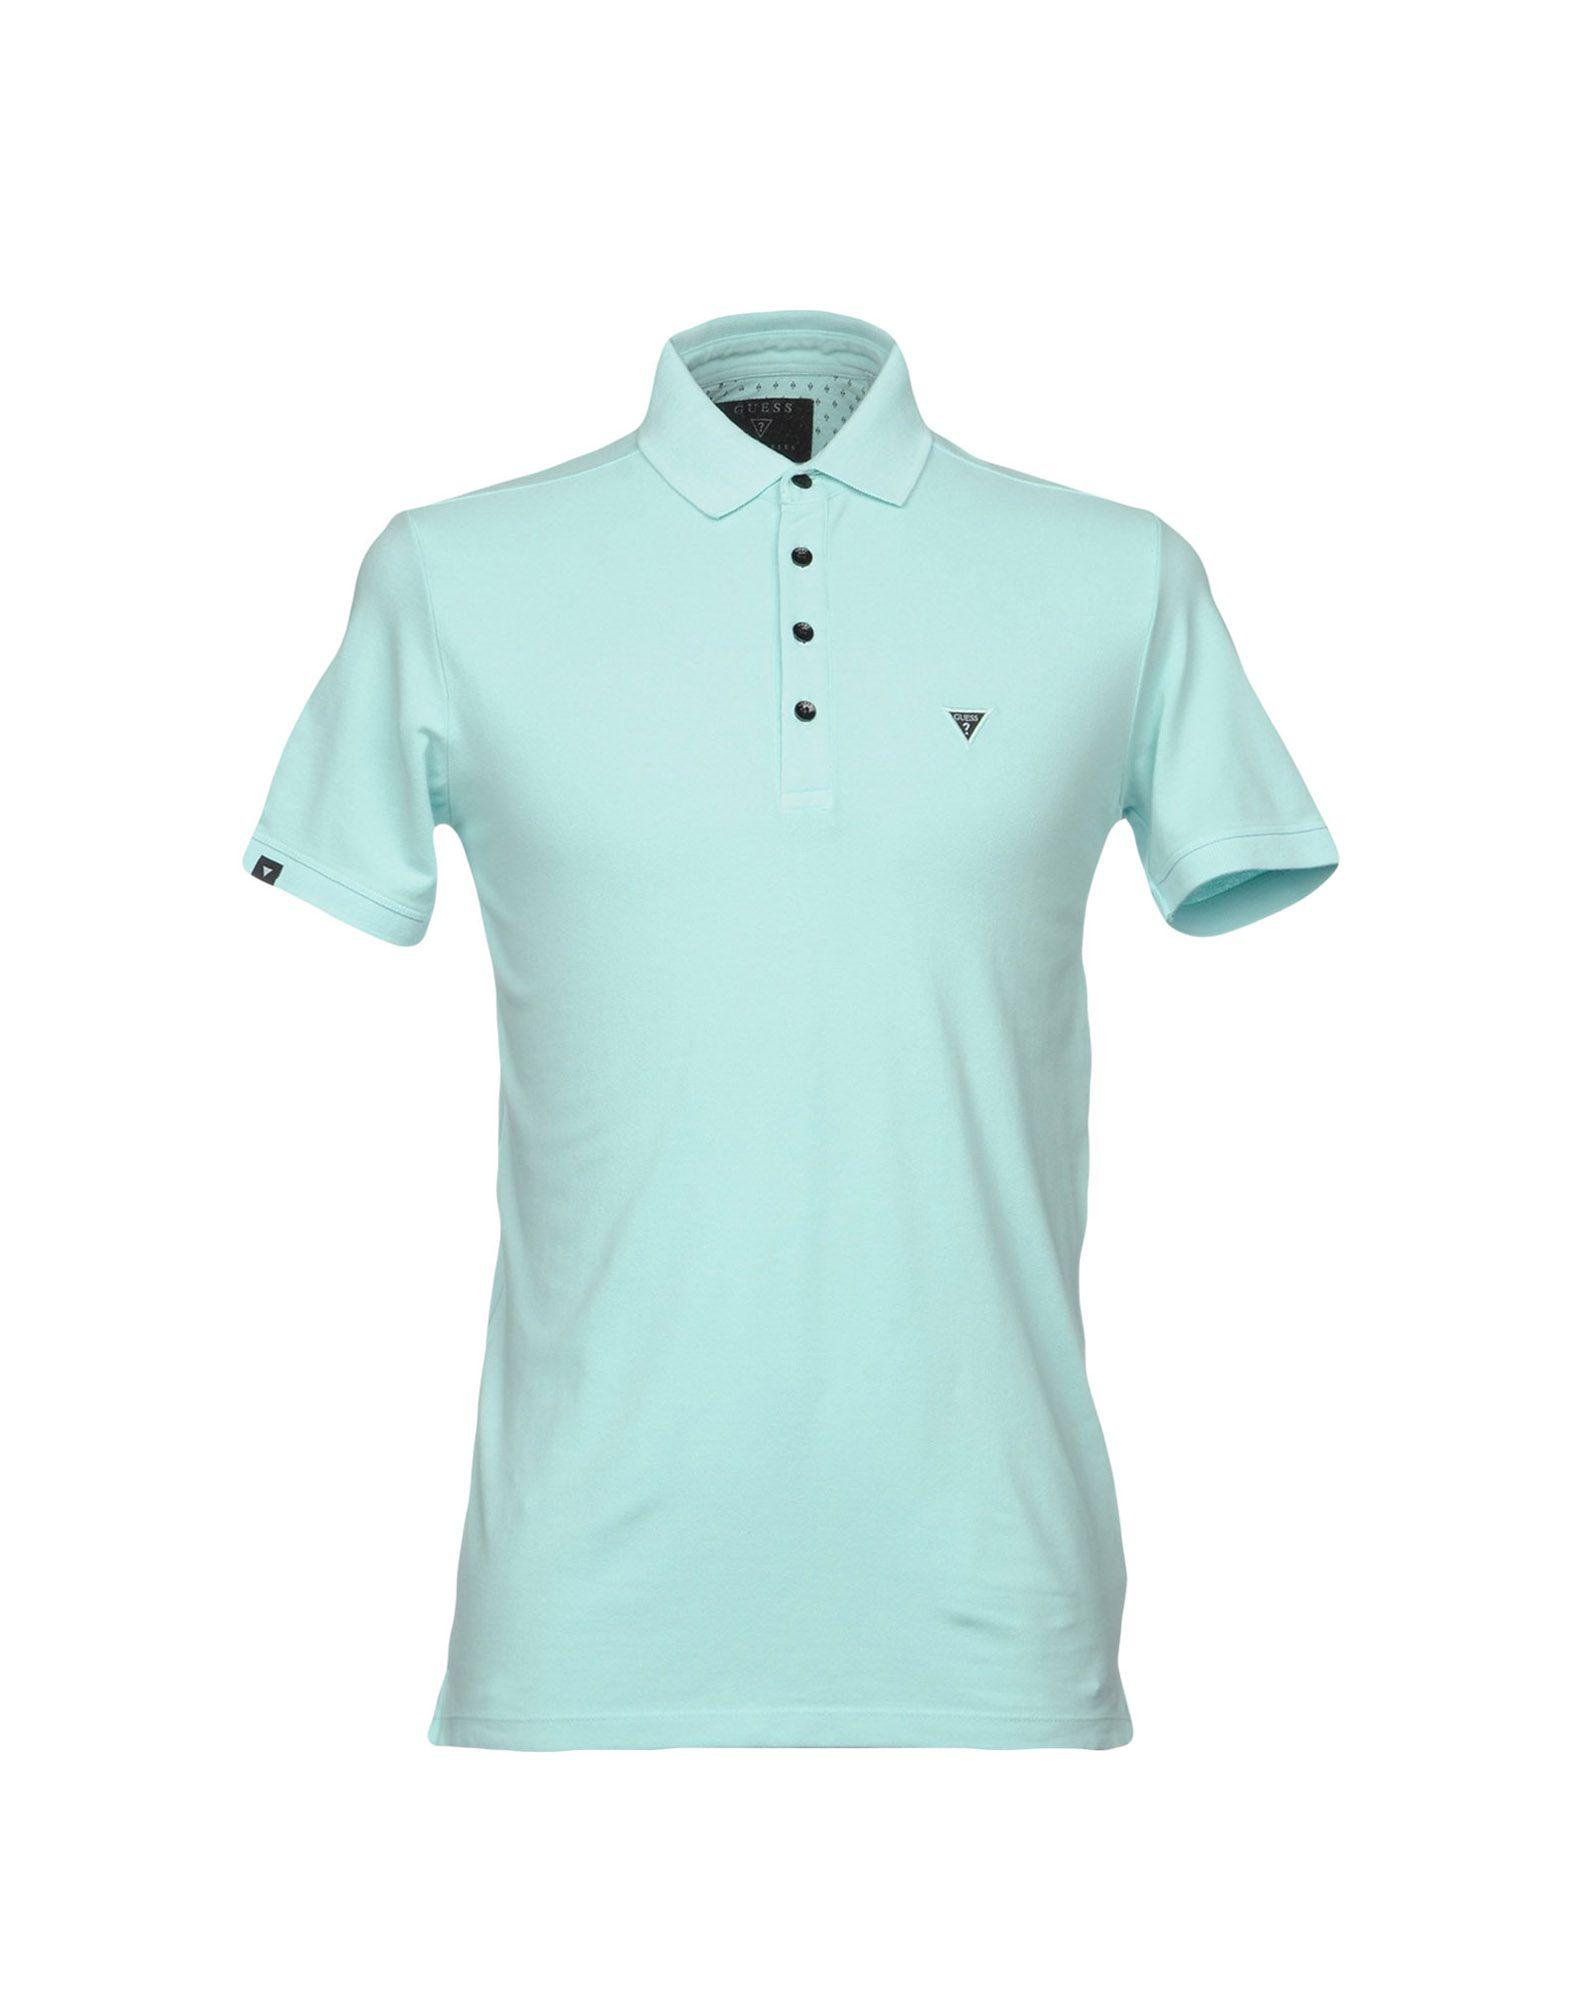 72545def Lyst - Guess Polo Shirt in Blue for Men